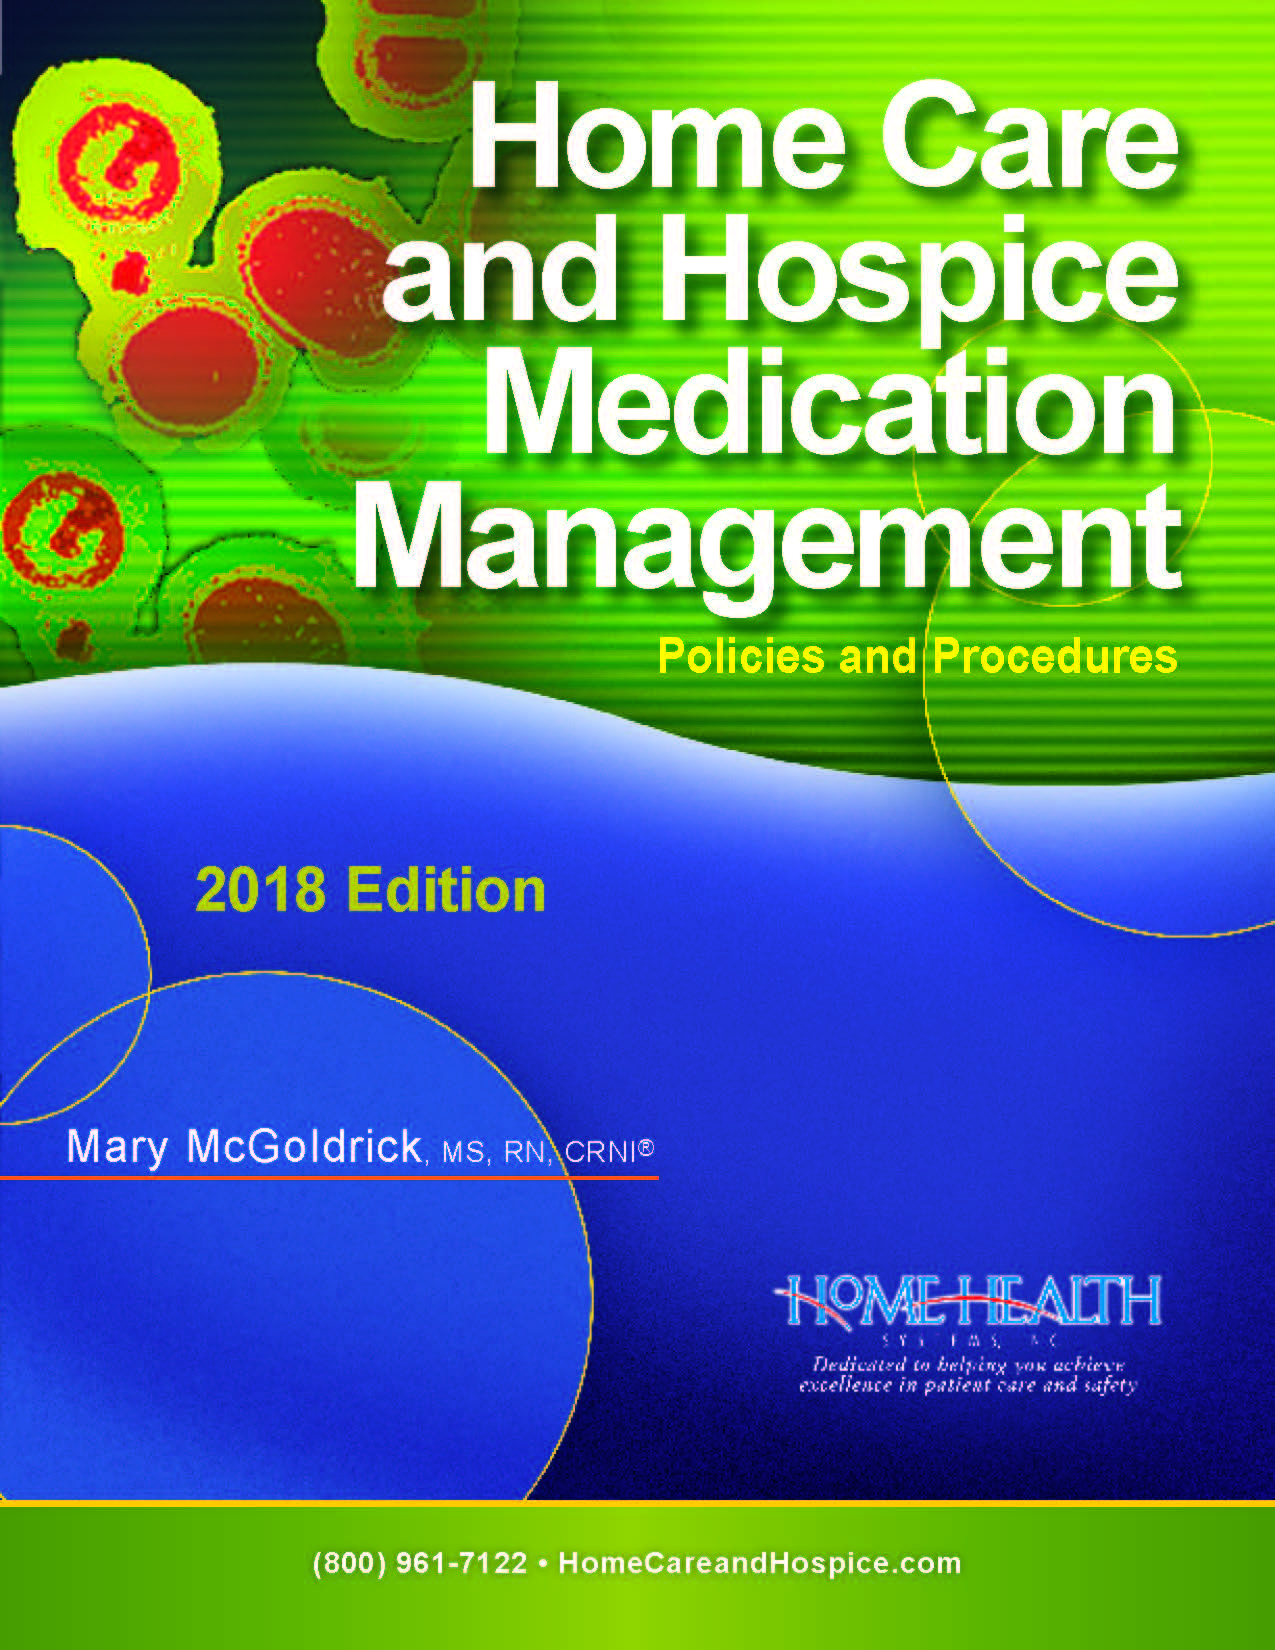 Home Care and Hospice Medication Management